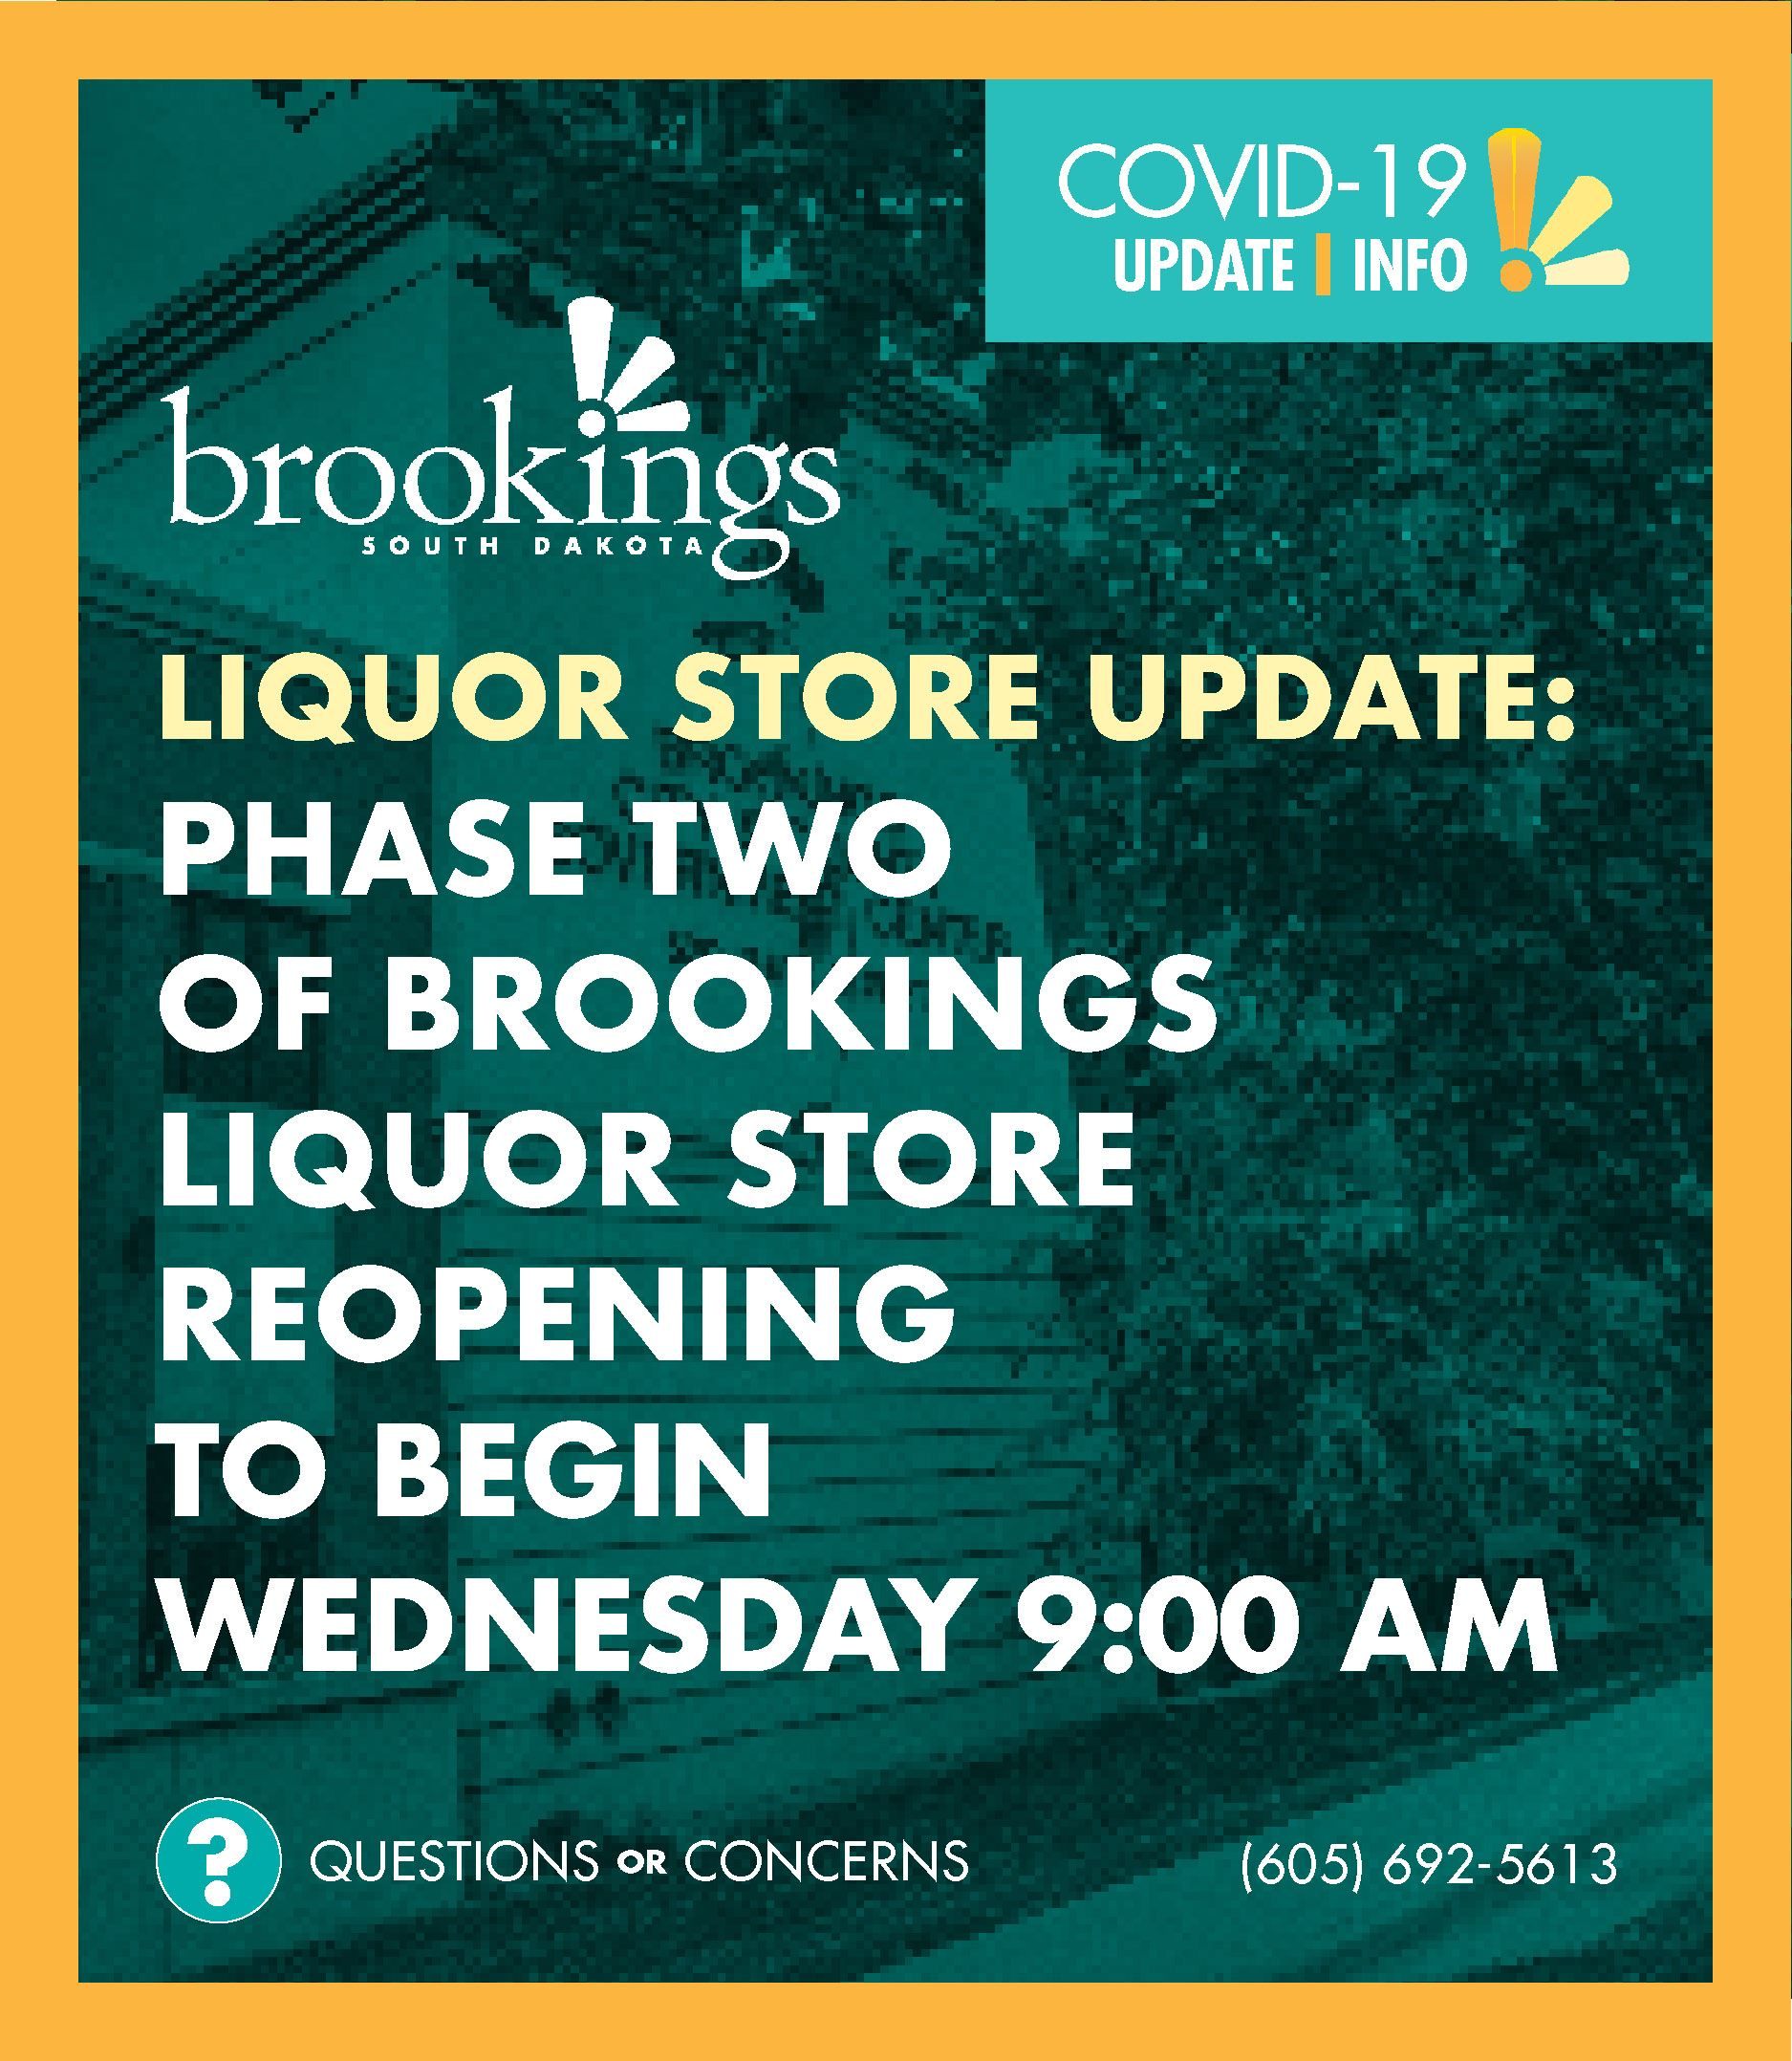 Newsflash Covid-19 2020 - Liquor Store Reopening